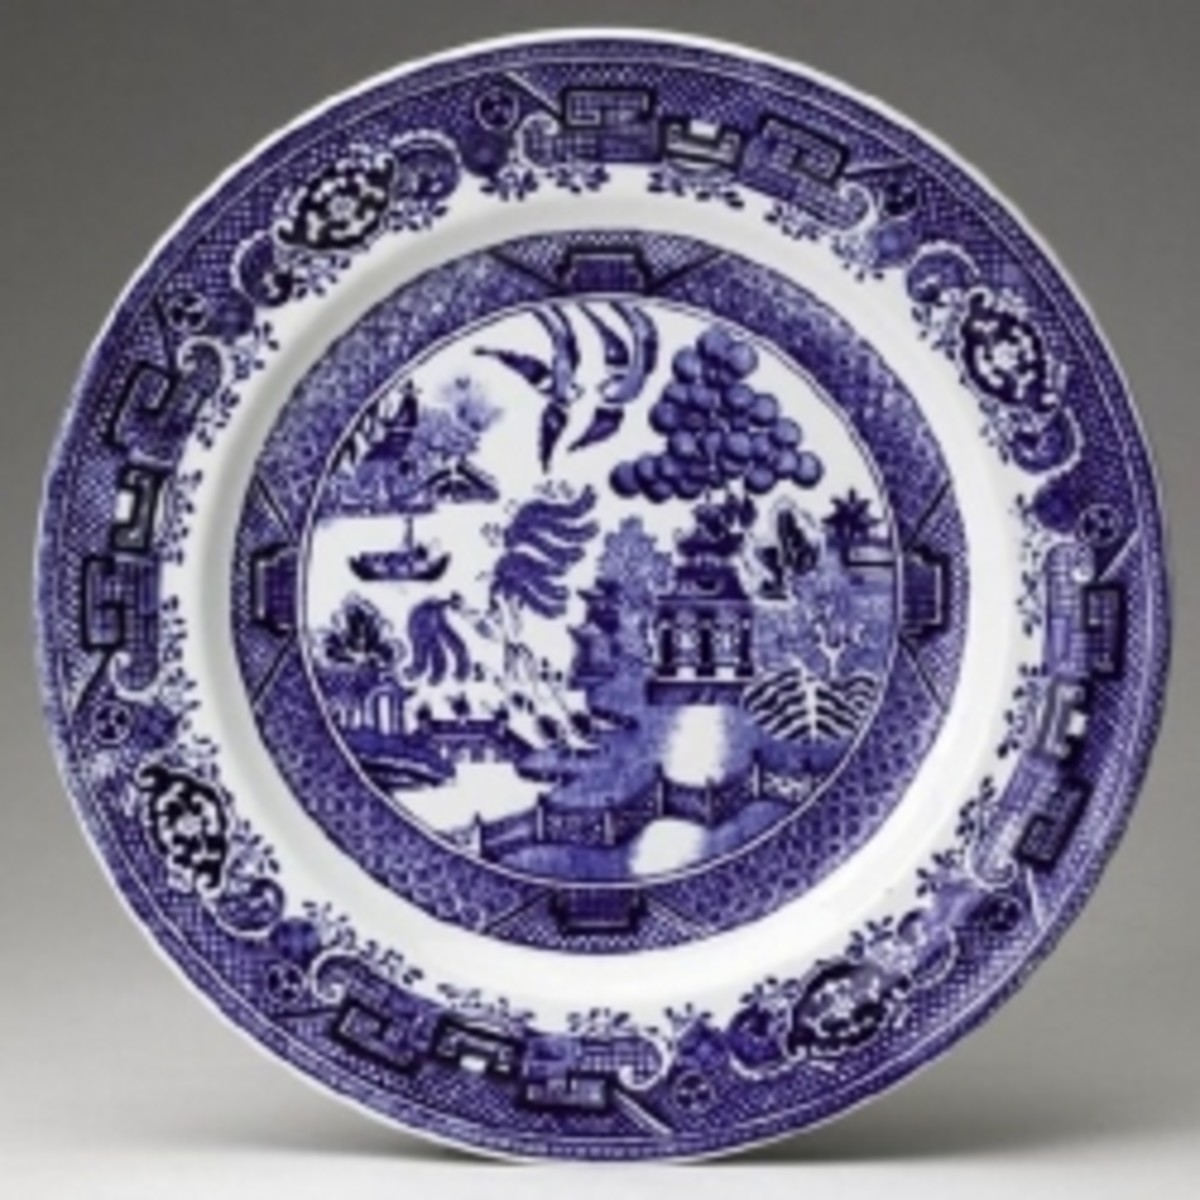 Plate with Willow pattern